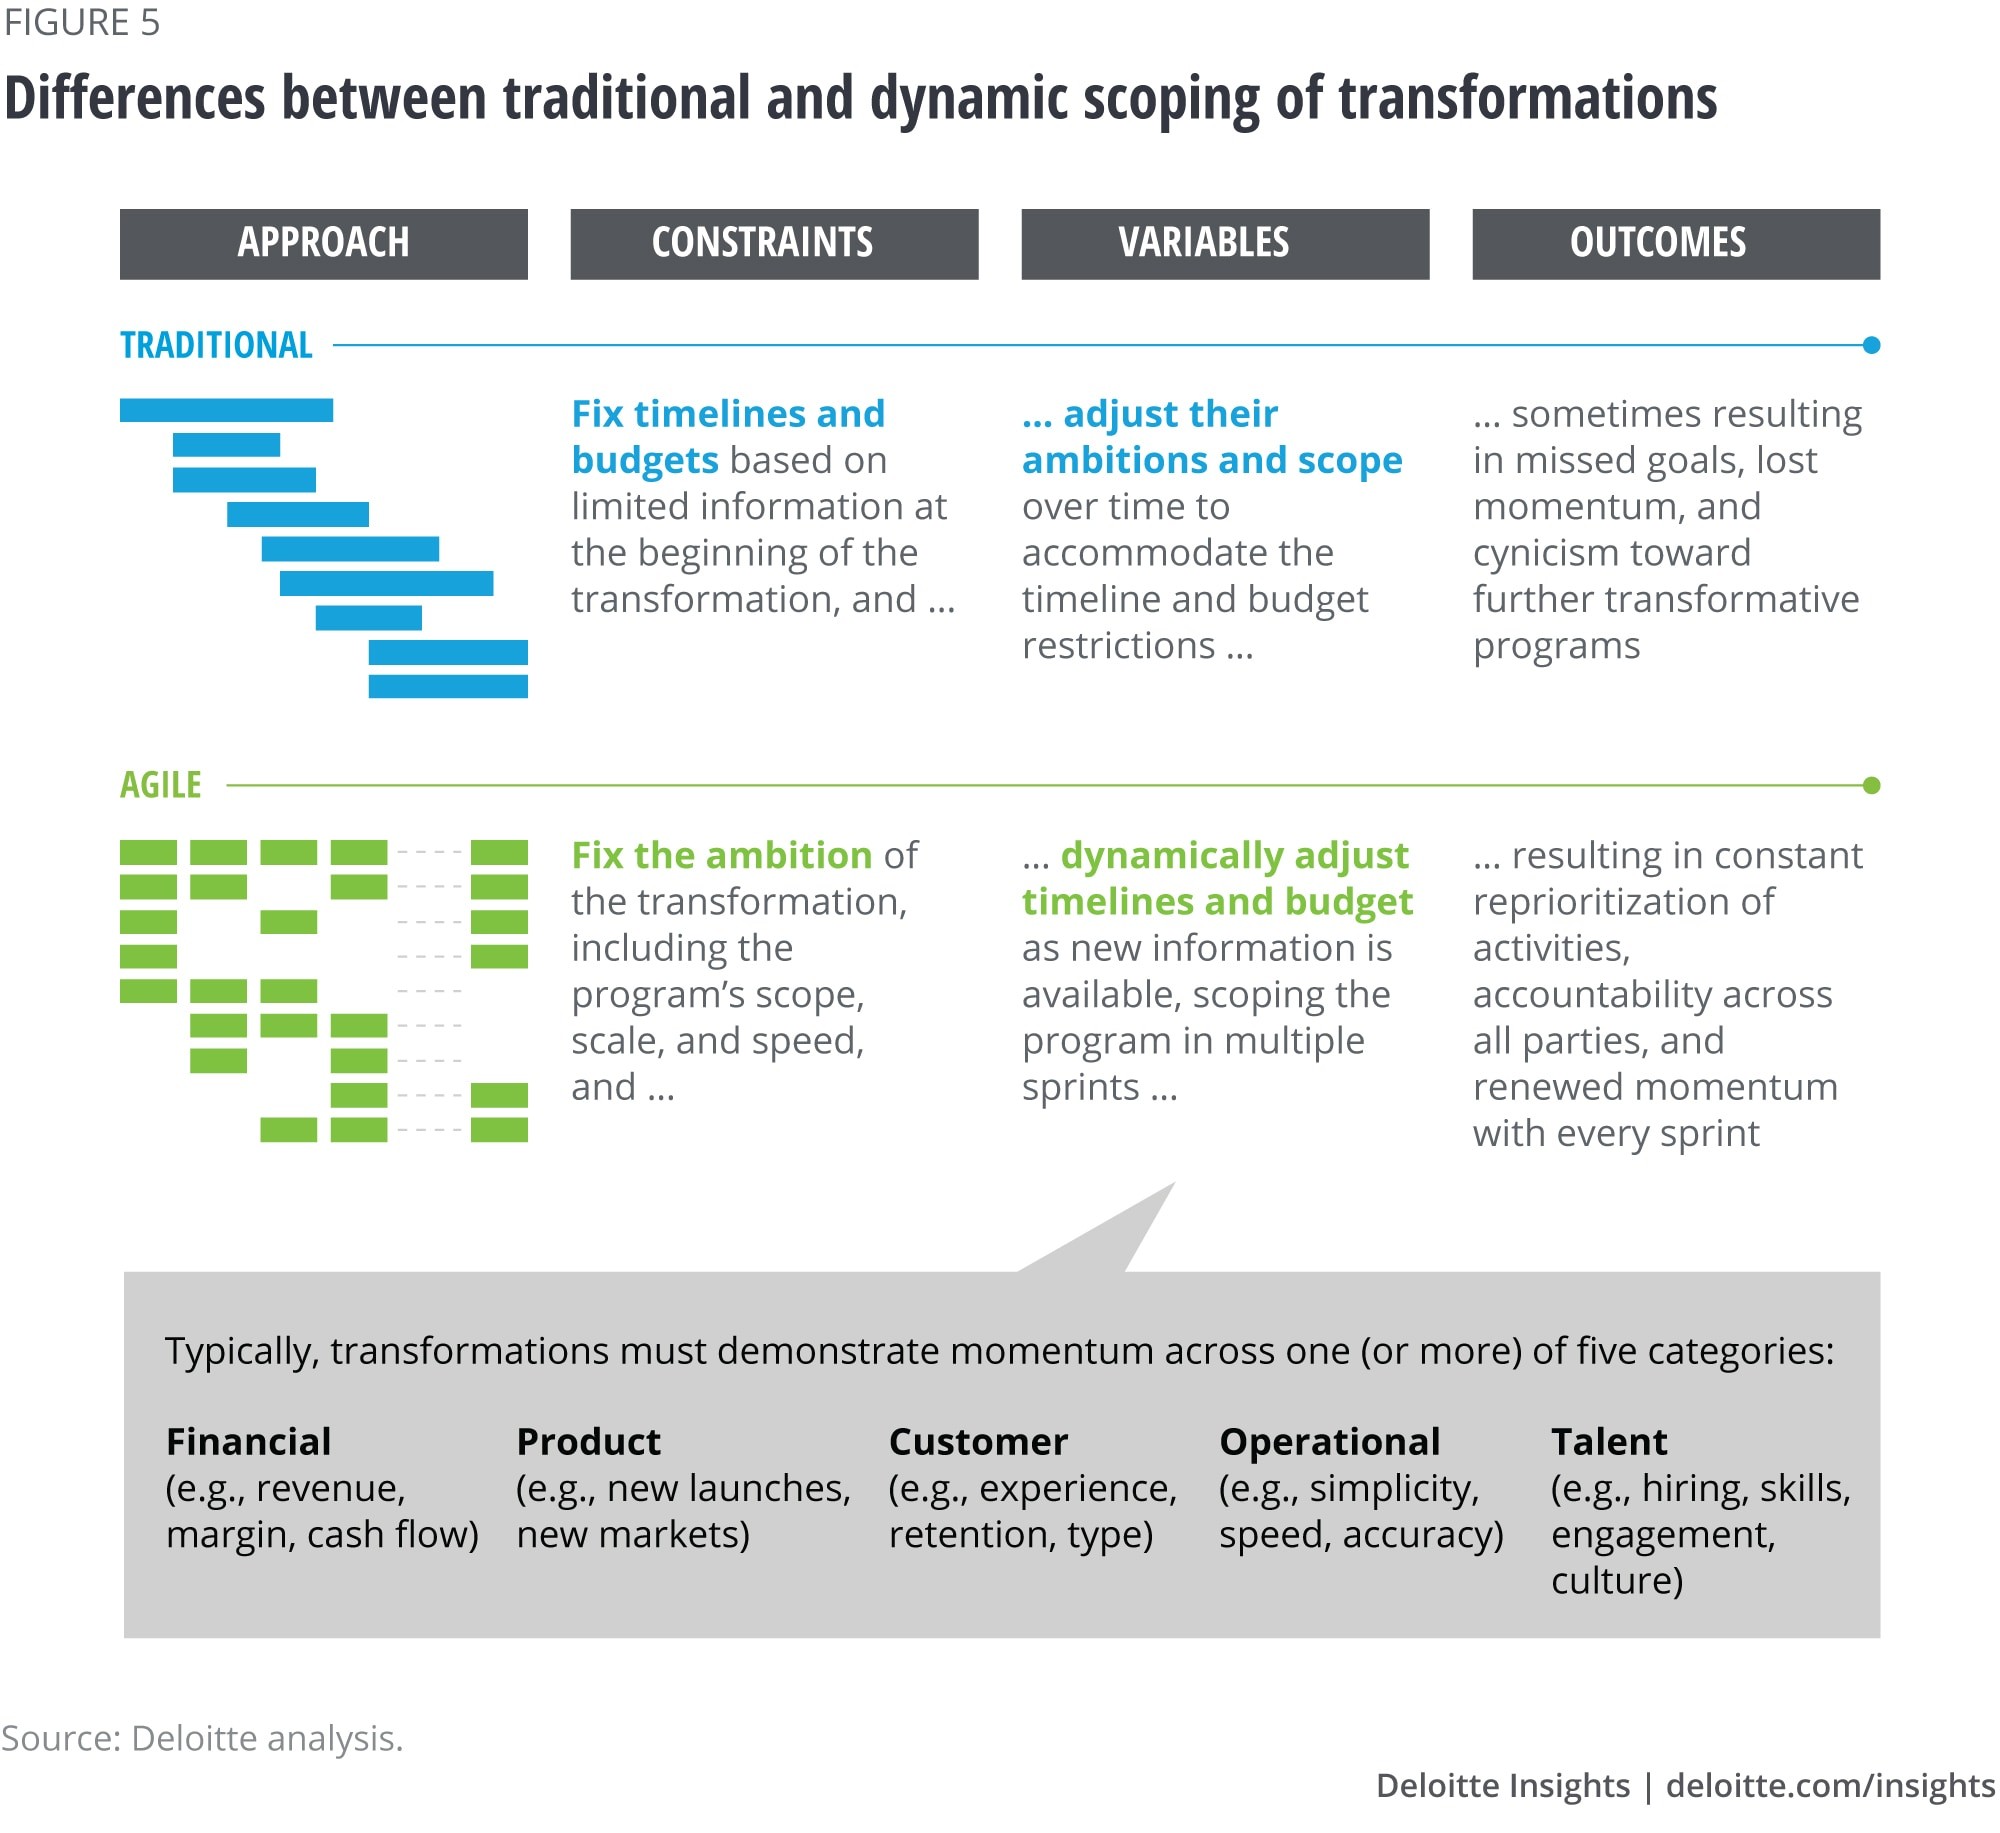 Differences between traditional and dynamic scoping of transformations